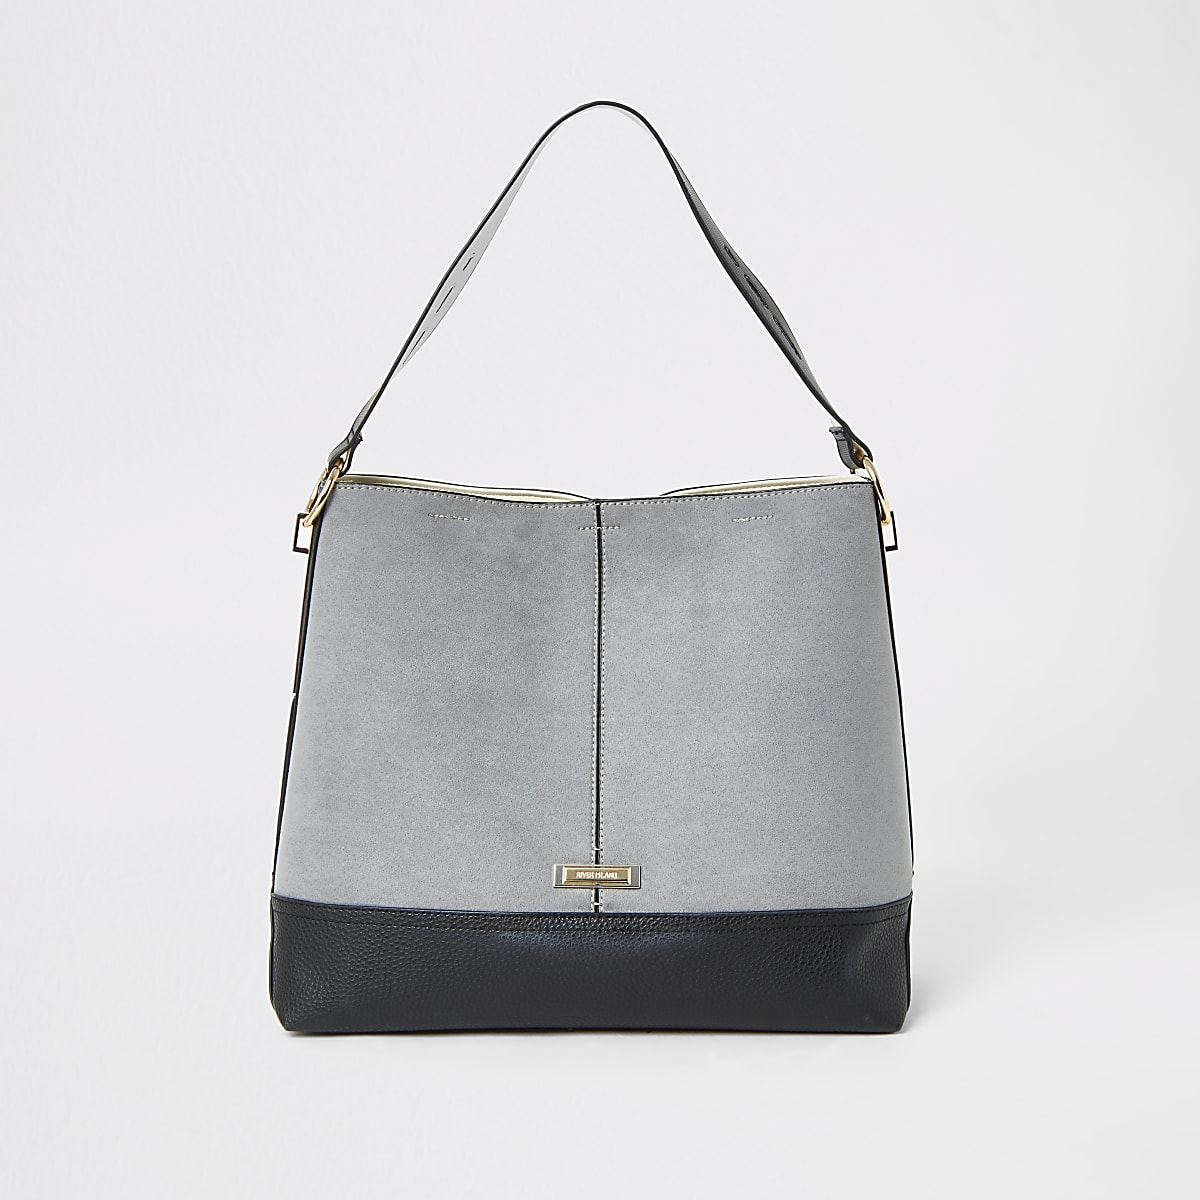 50% price new specials recognized brands Grey slouch bag